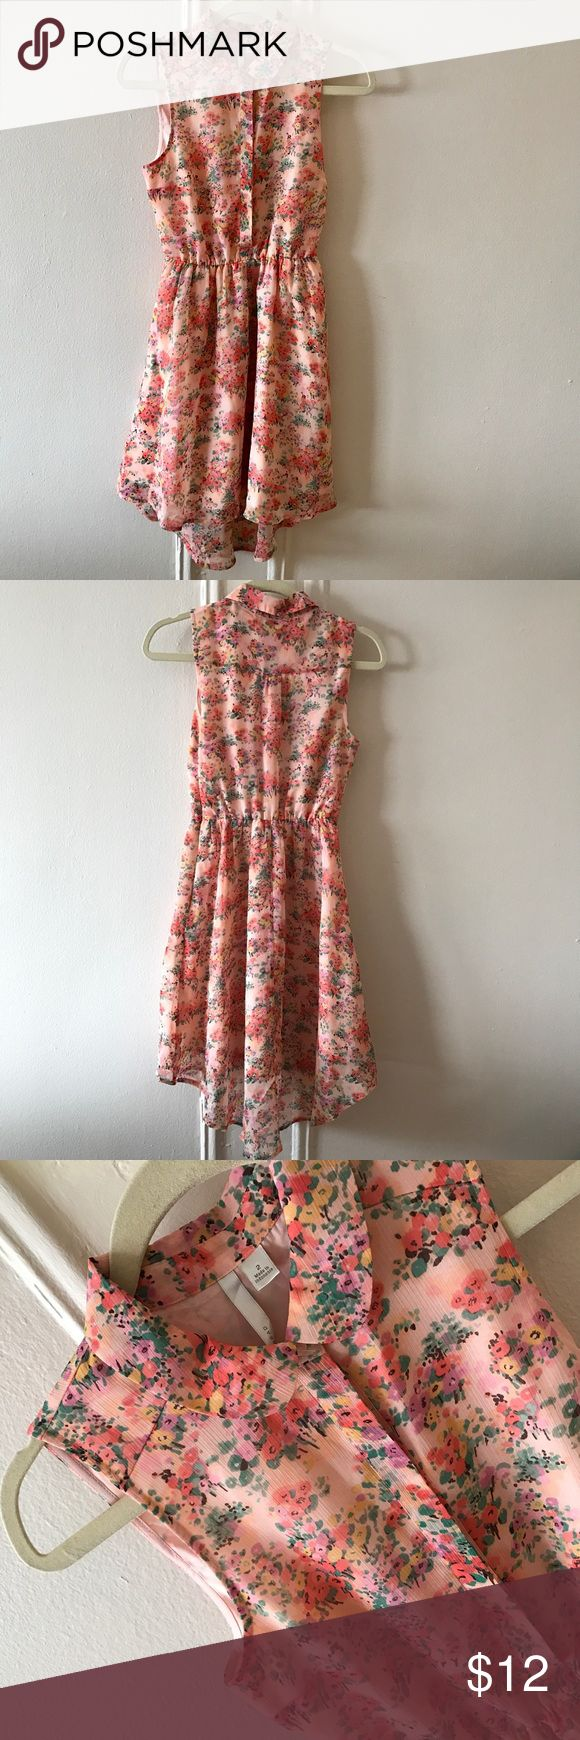 Pink floral LC Lauren Conrad dress Worn once beautiful pink floral Lauren Conrad dress in perfect condition. It's a great spring outfit in a size 2. LC Lauren Conrad Dresses